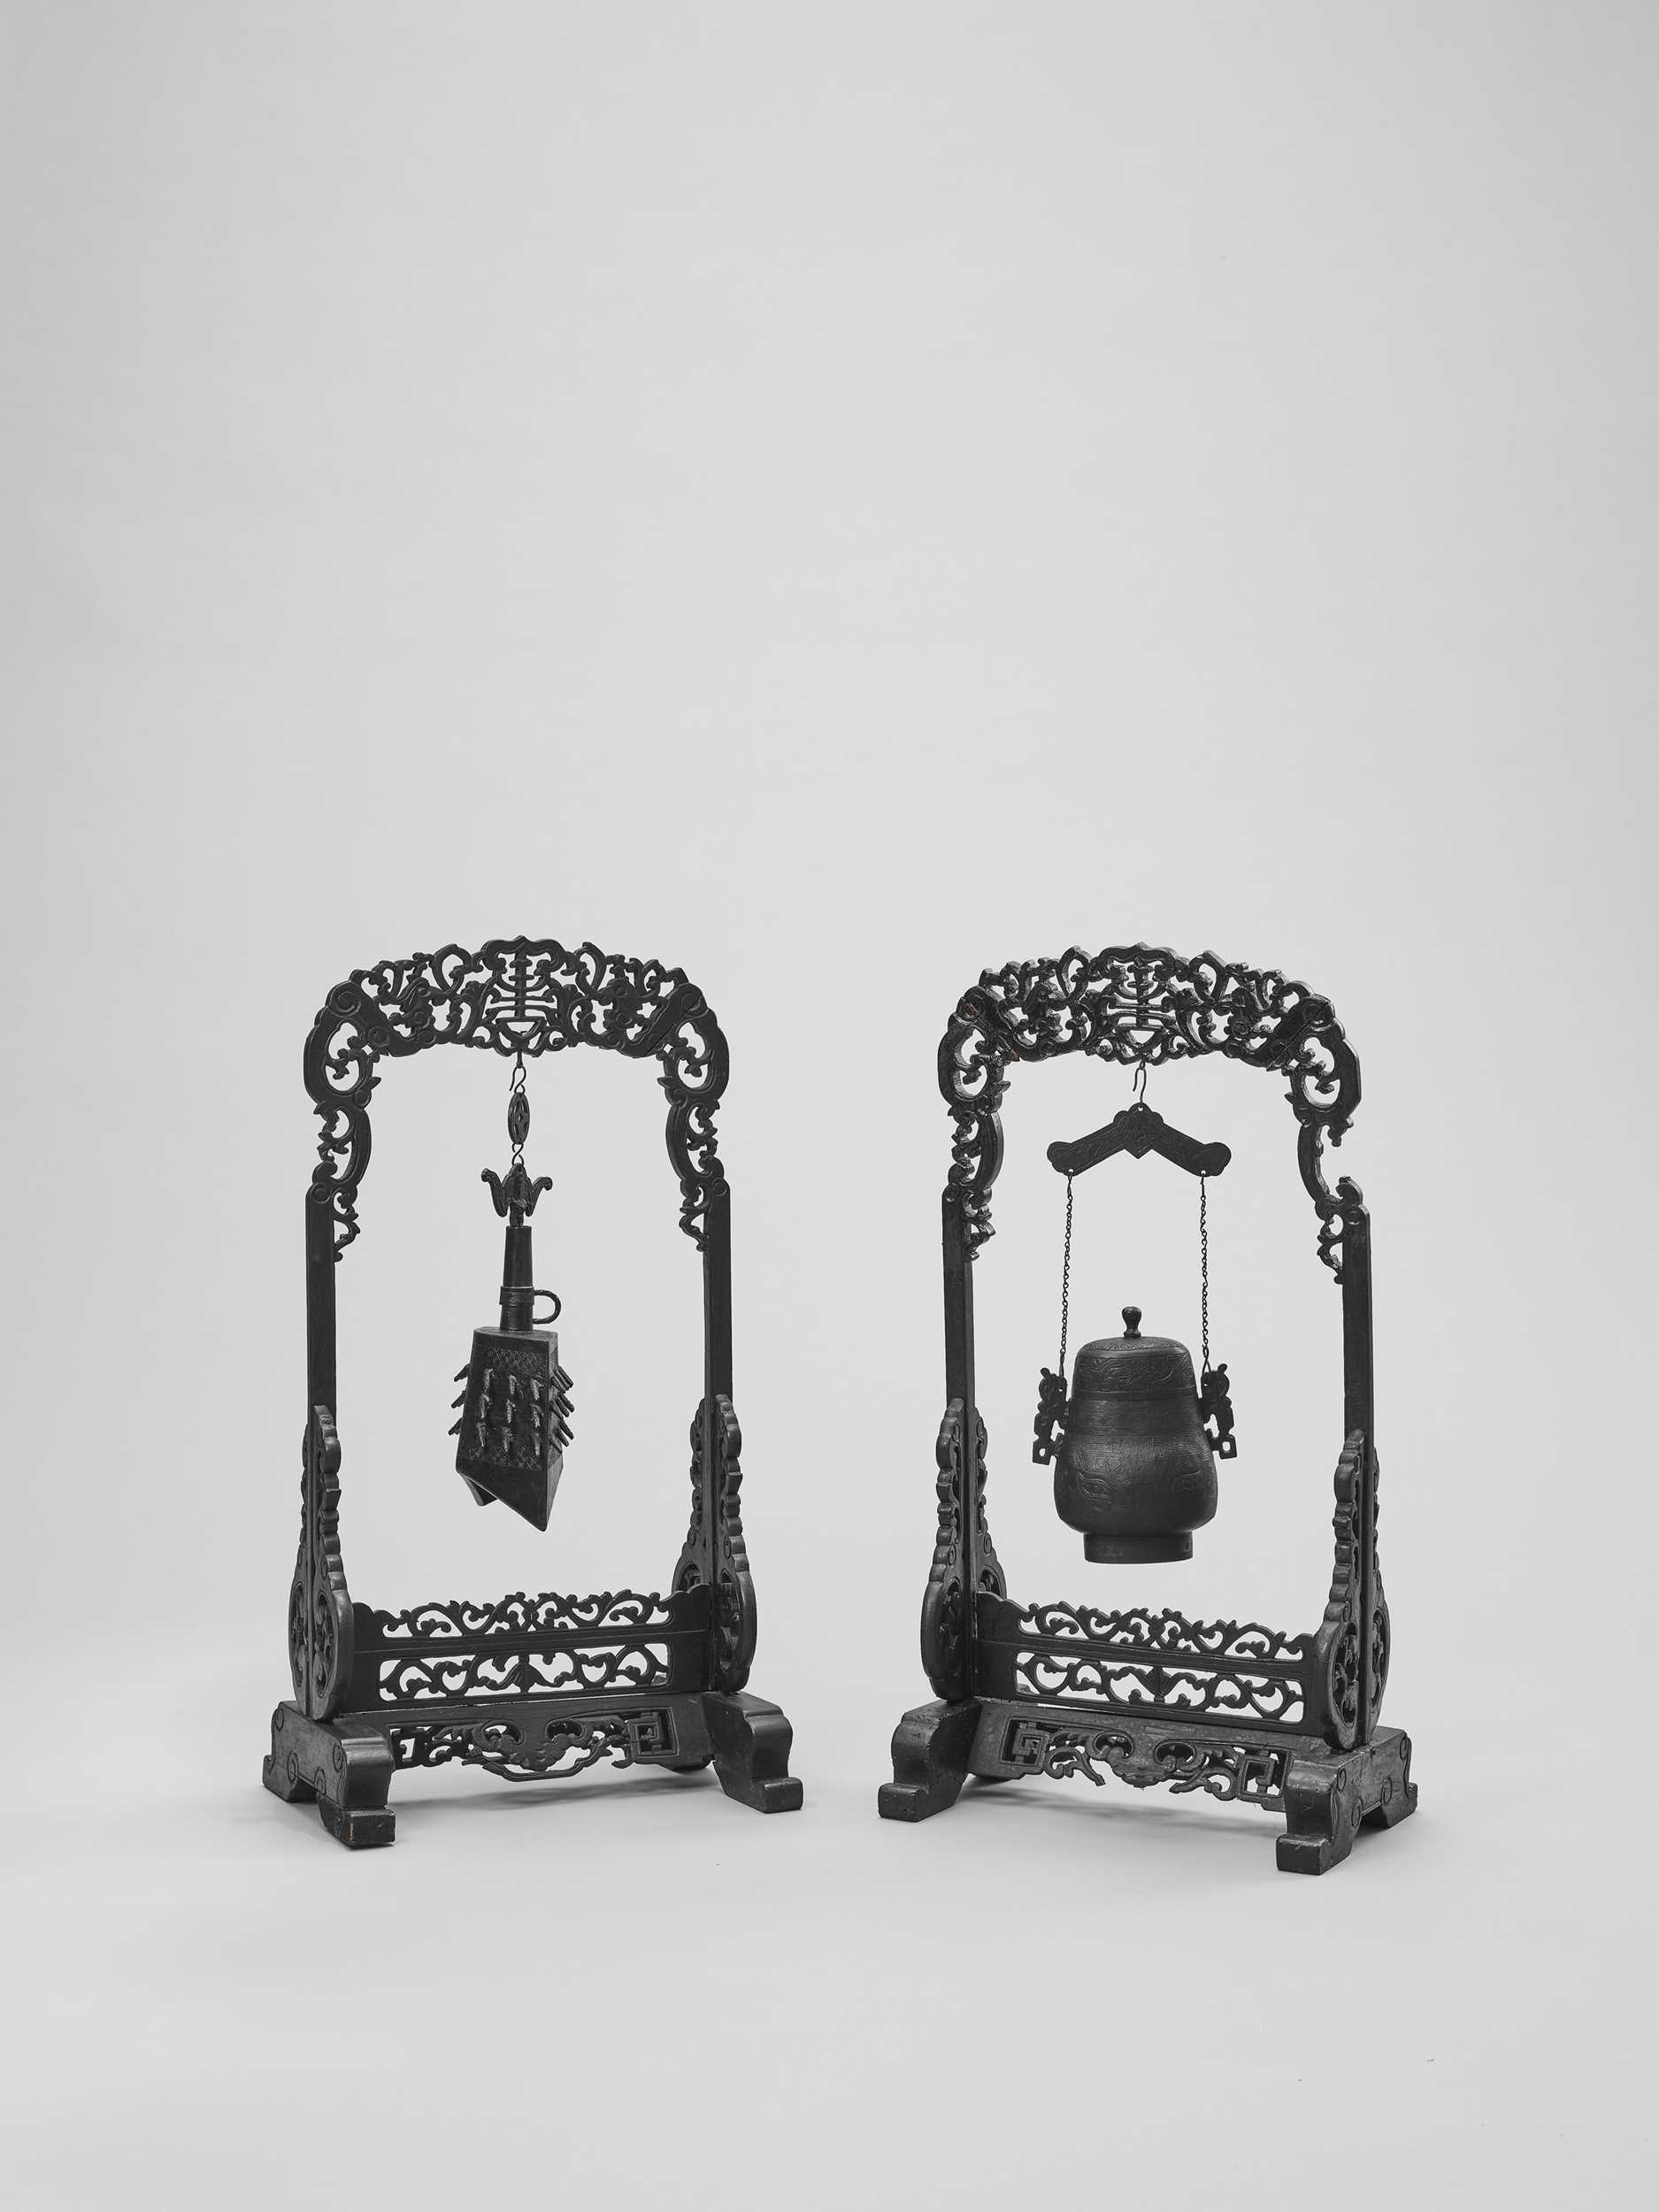 Lot 534 - AN ARCHAISTIC BRONZE TEMPLE BELL AND VESSEL SUSPENDED IN HARDWOOD FRAMES AND STANDS, QING